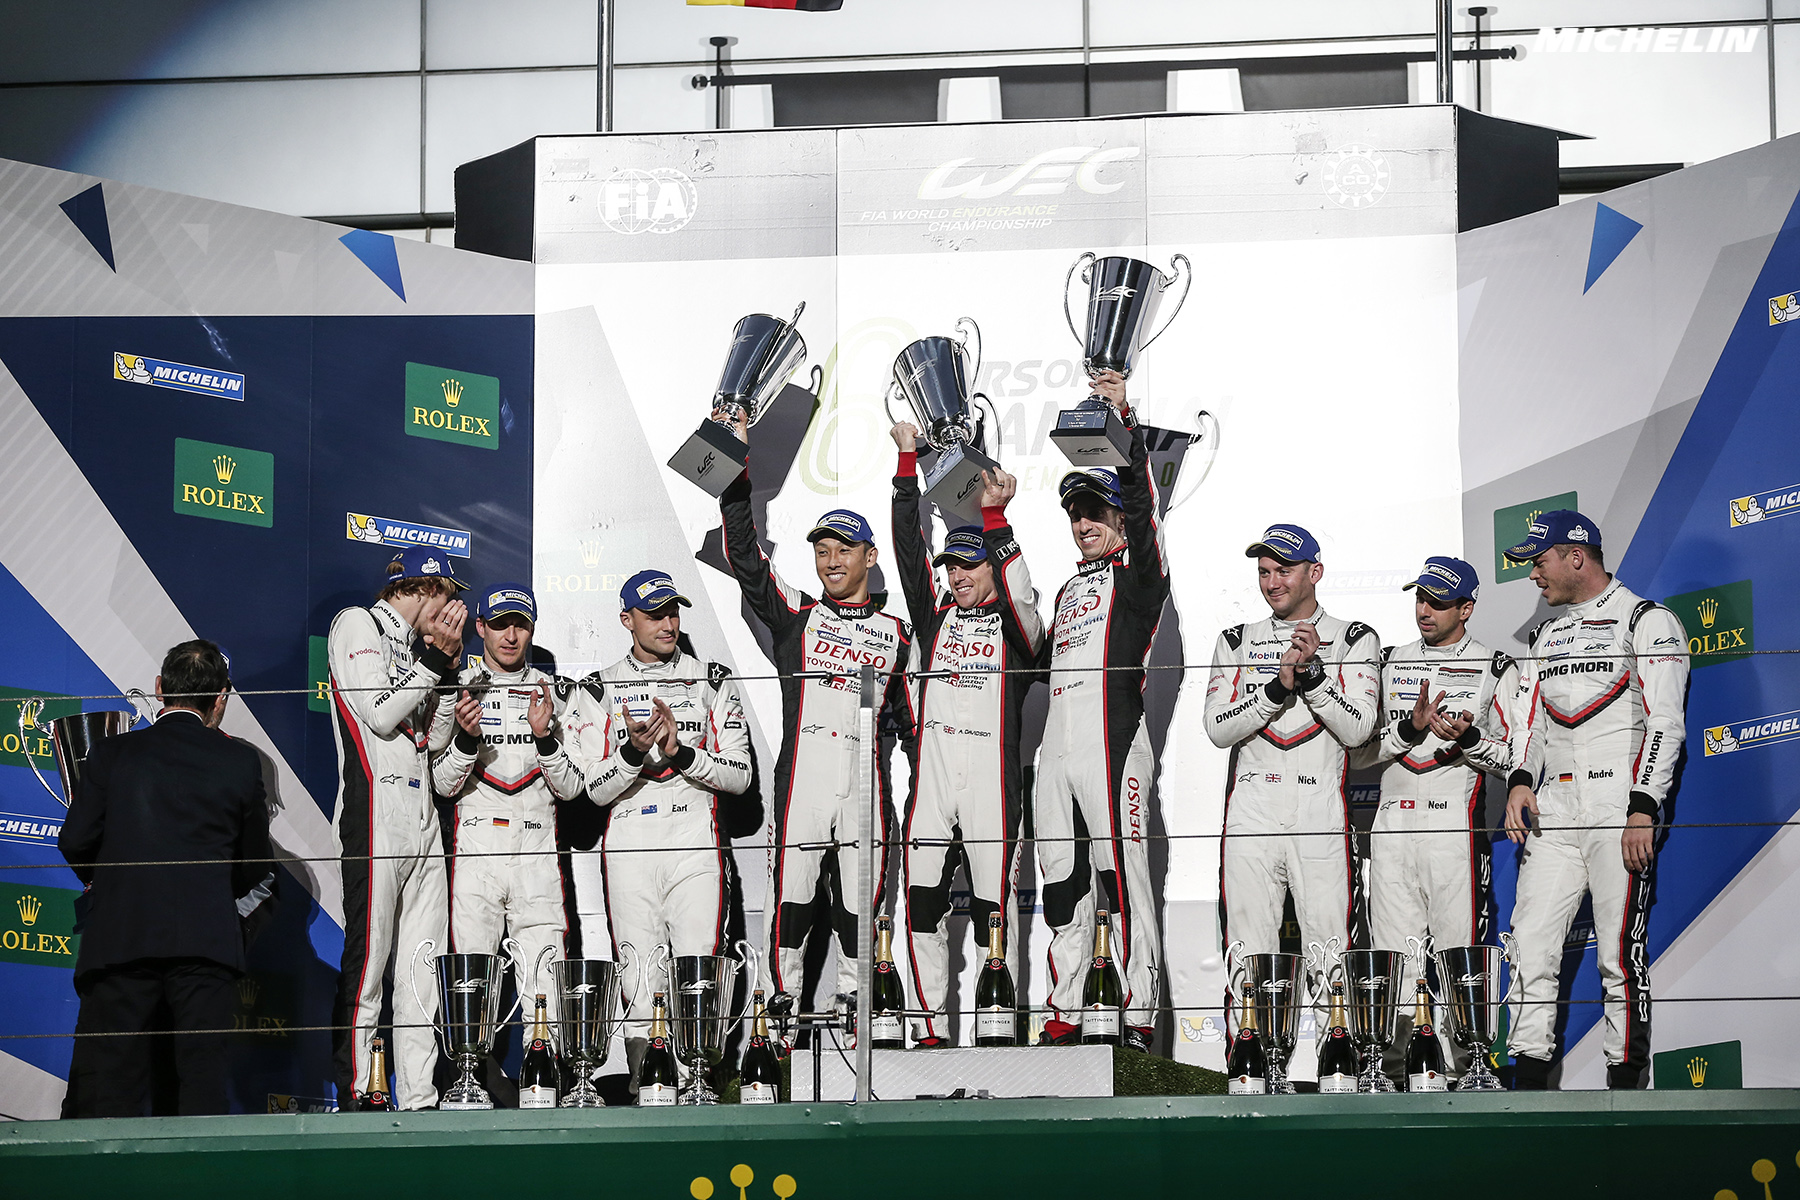 Toyota wins as Porsche/Michelin seals 2017 WEC crown